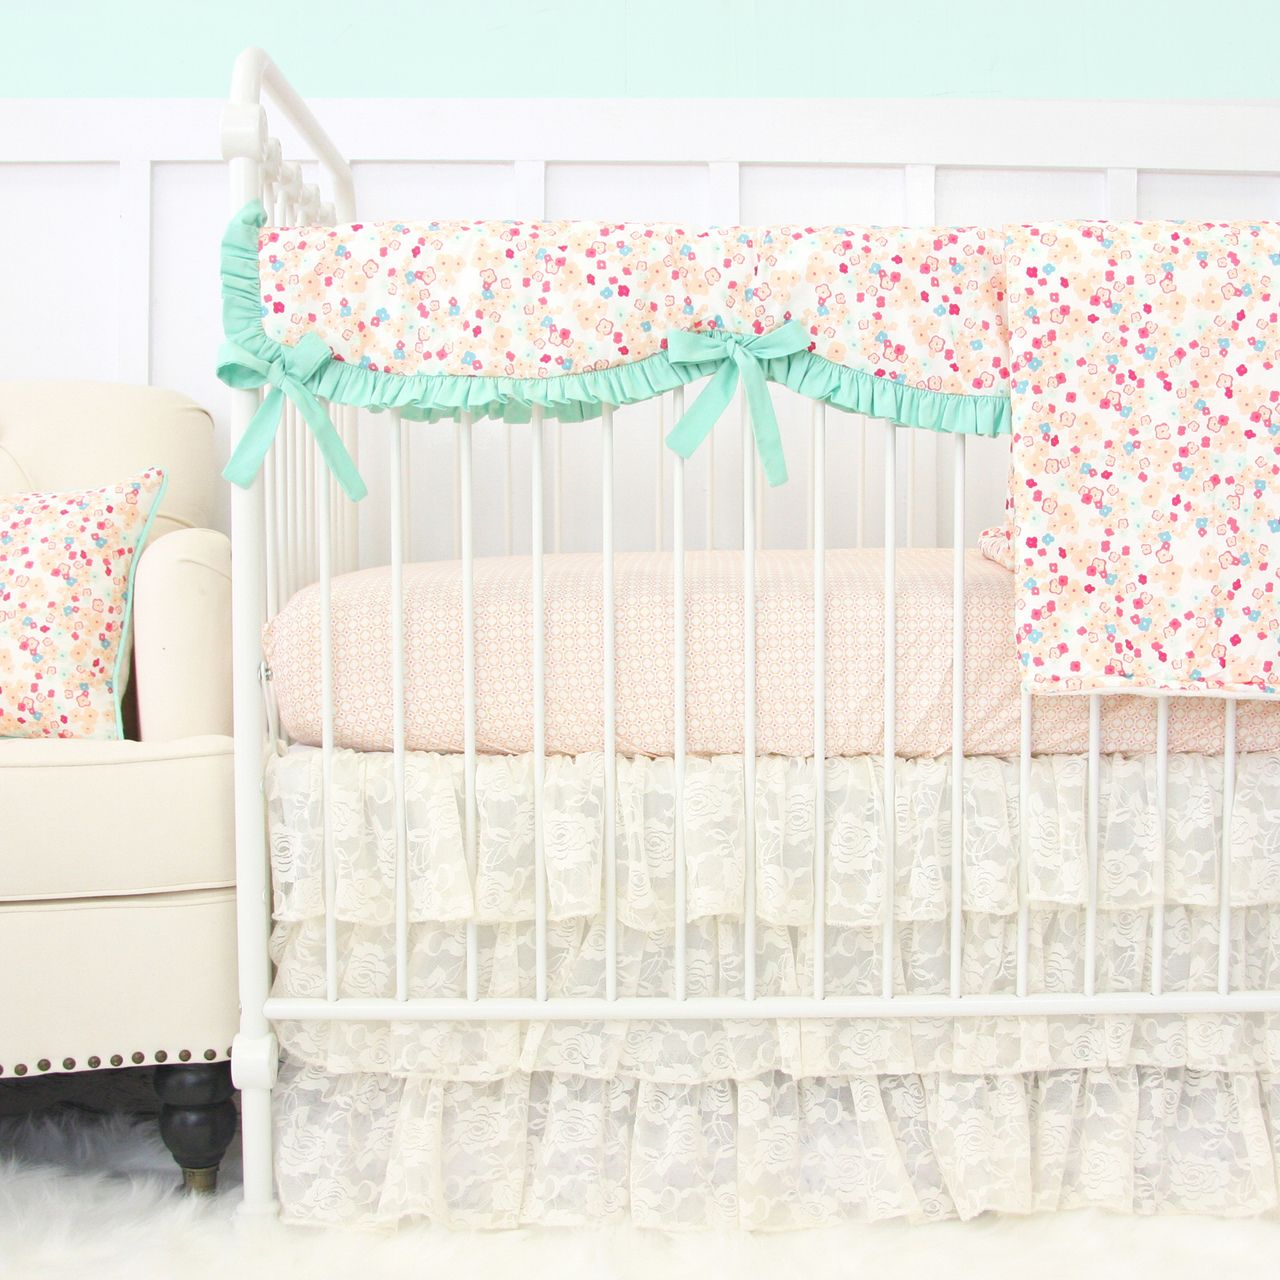 Floral Nursery Bedding Awesome Gorgeous Vintage Lace Baby Bedding For A Sweet Baby Girl Nursery Design Inspiration